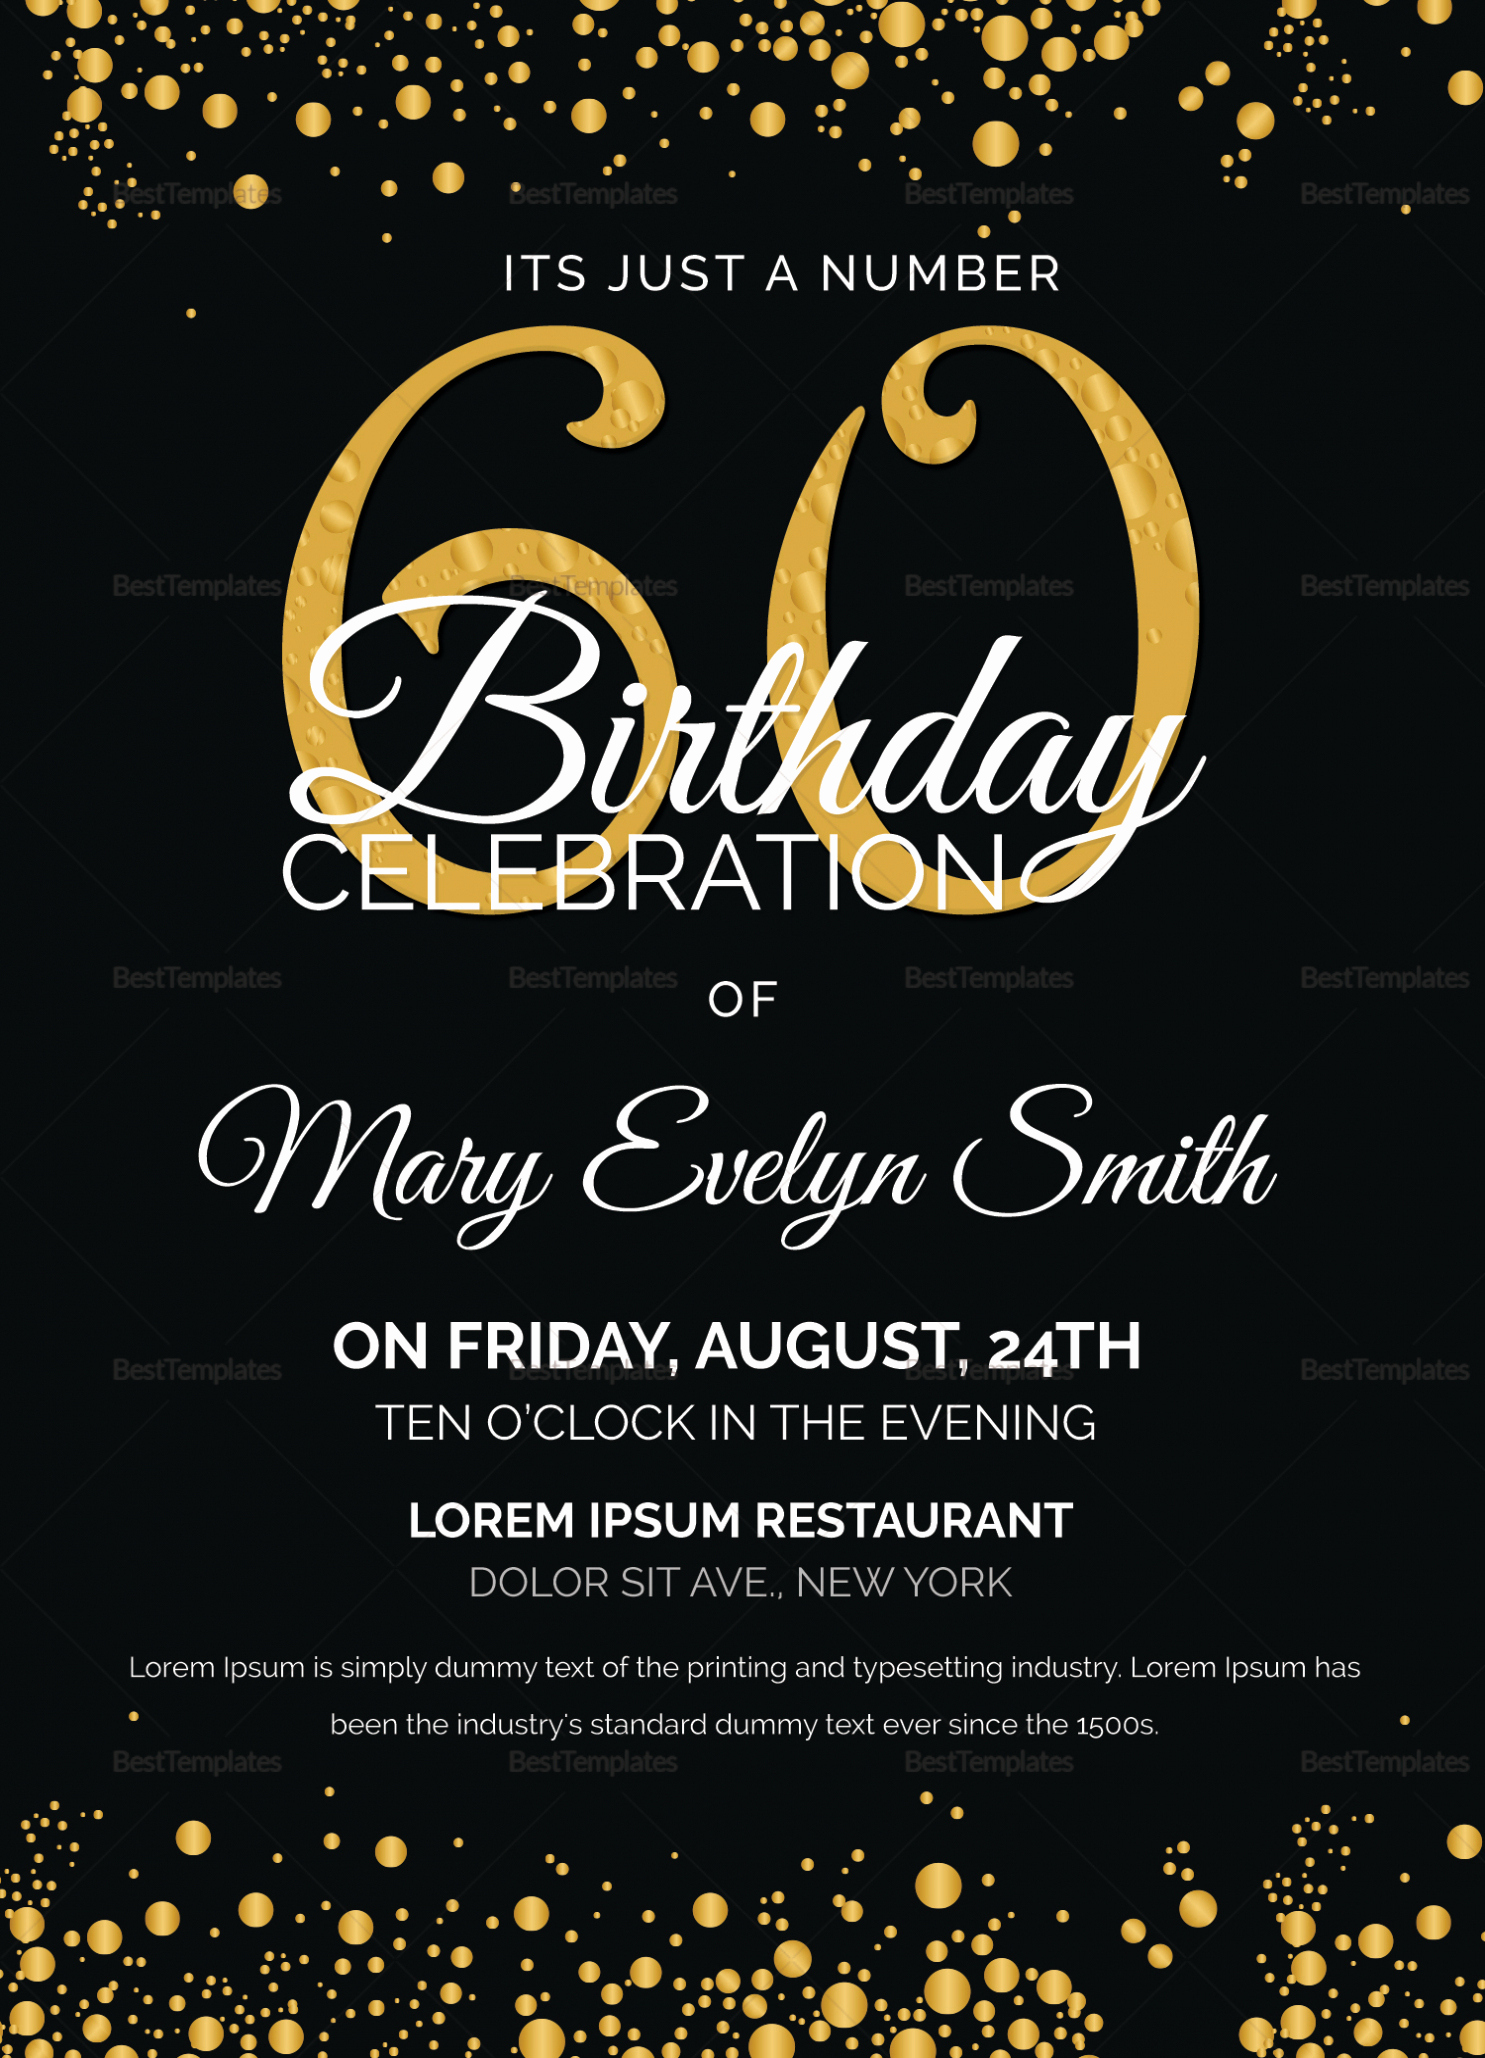 60th Birthday Invite Templates Lovely Tips Special 60th Birthday Invitations for Your Special